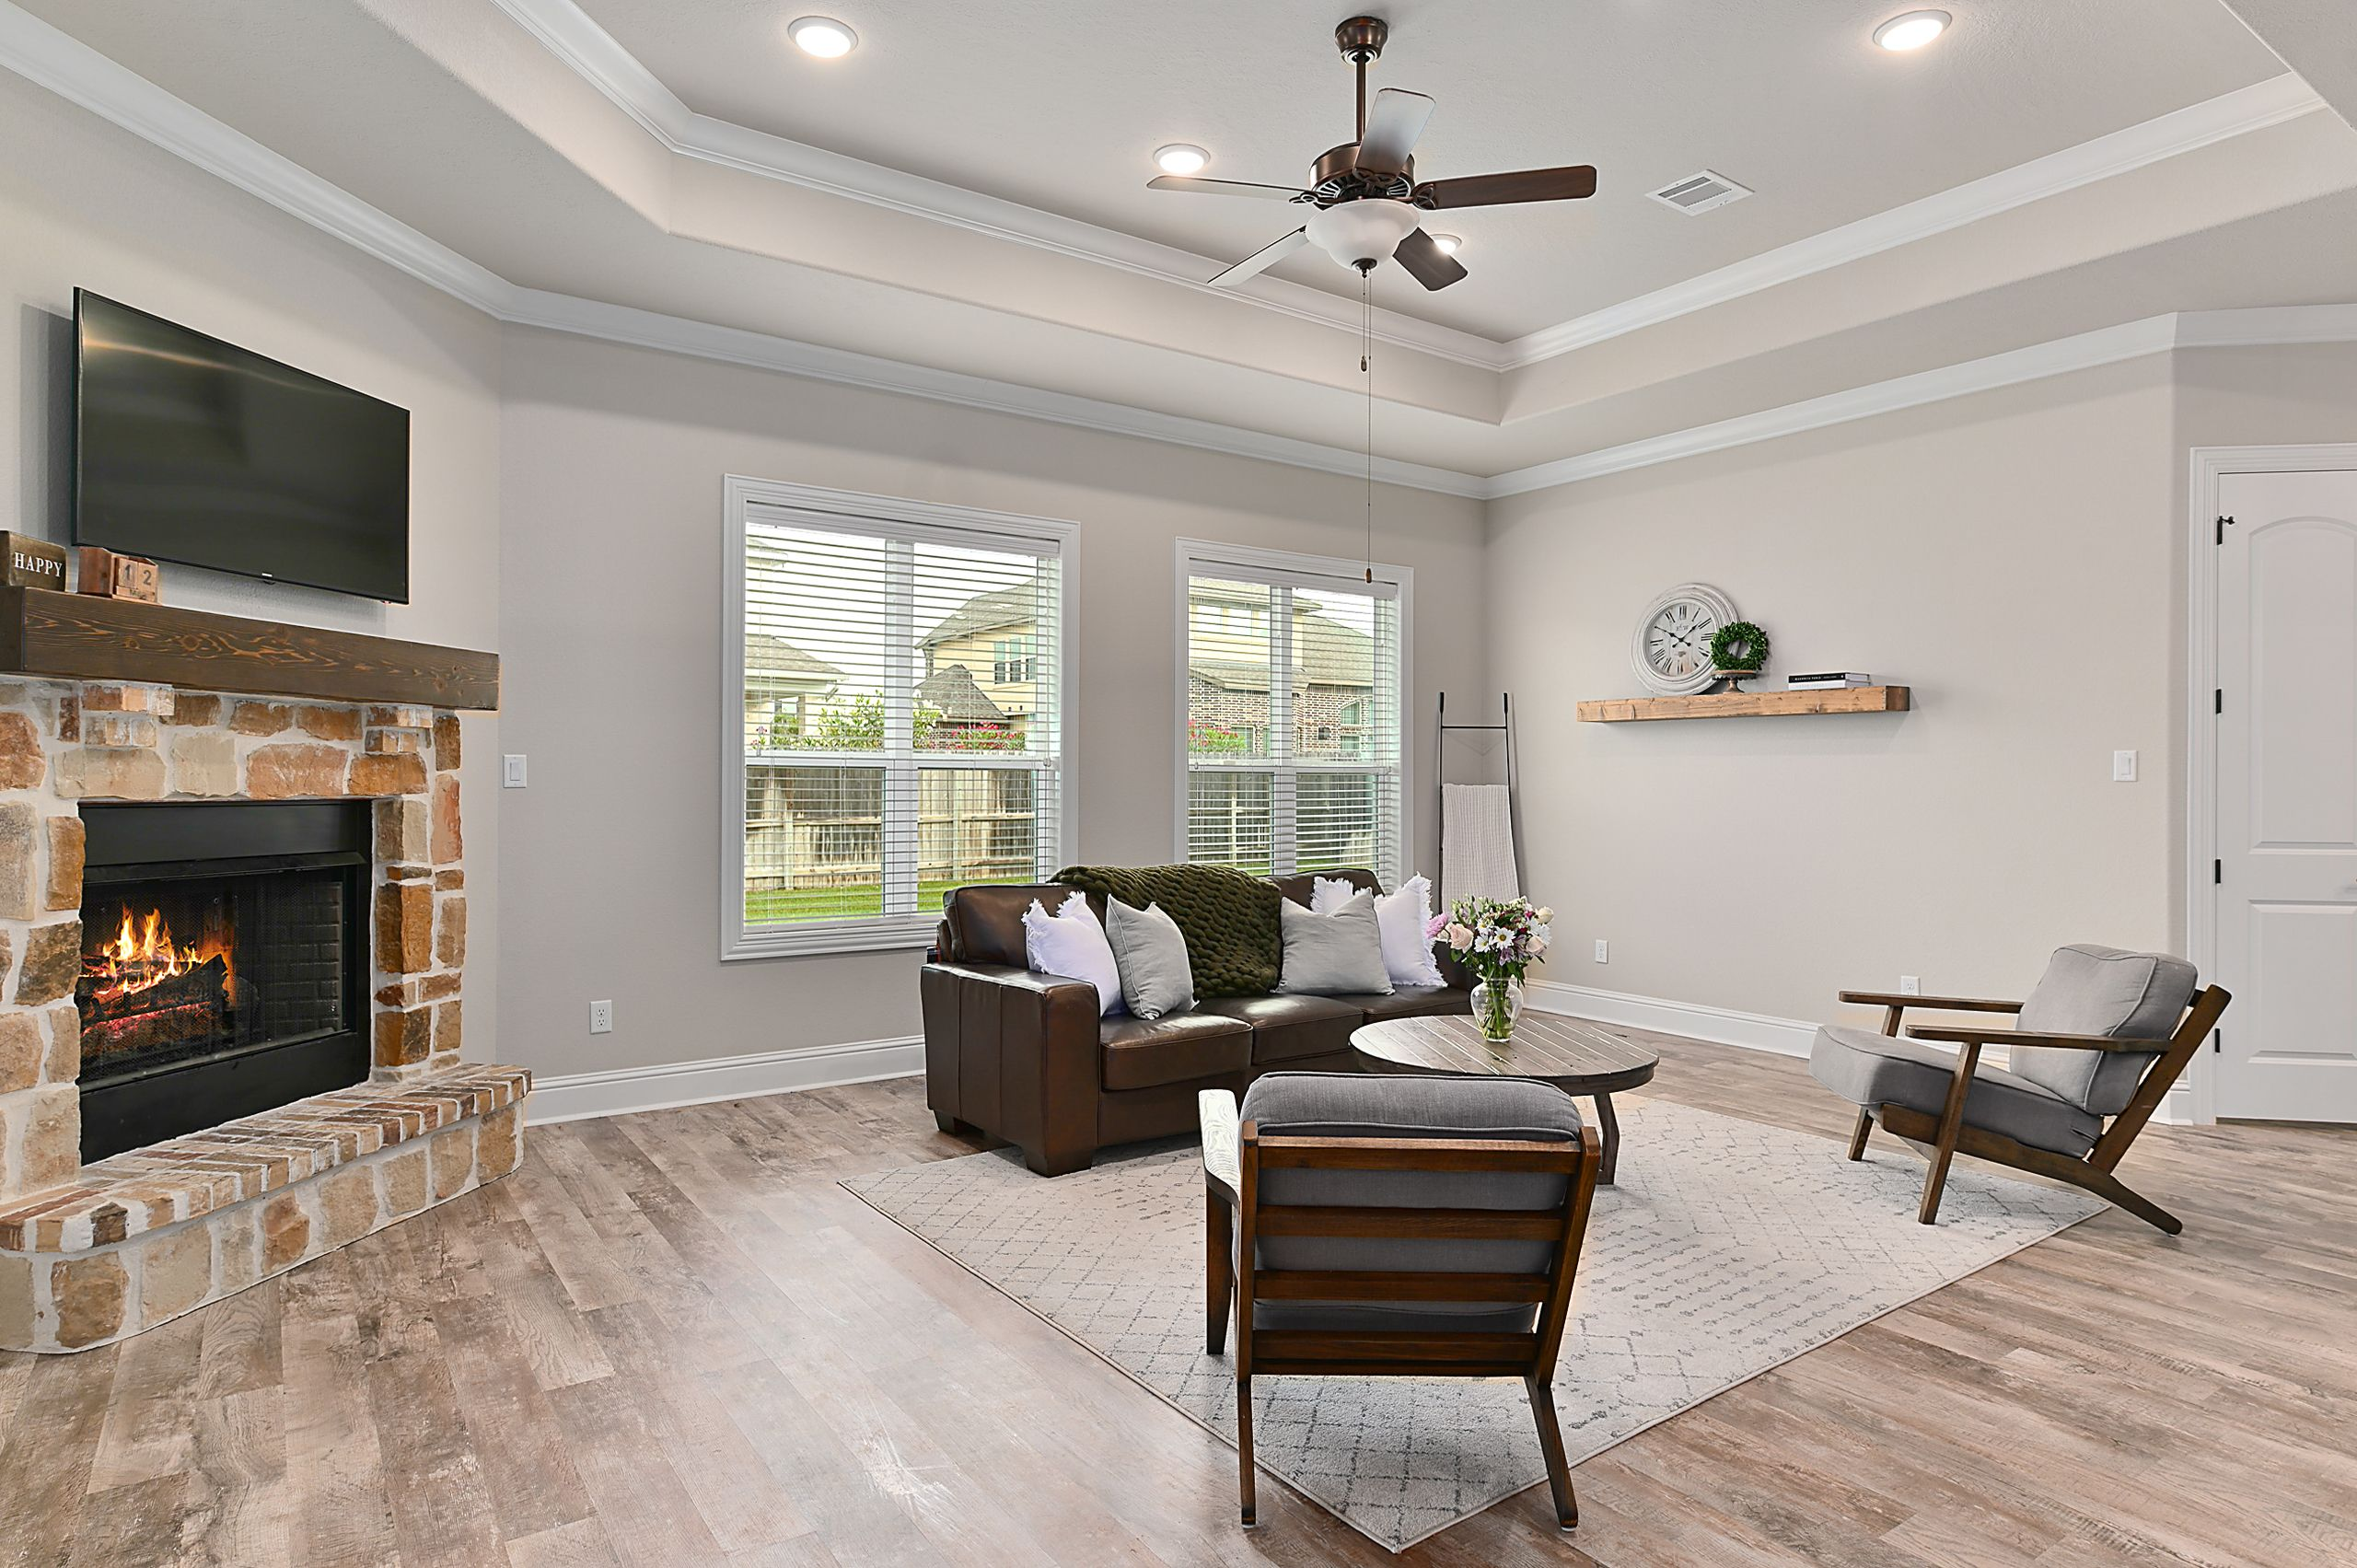 Living Area featured in the 4406 Uphor Court By Blackstone Homes in Bryan-College Station, TX